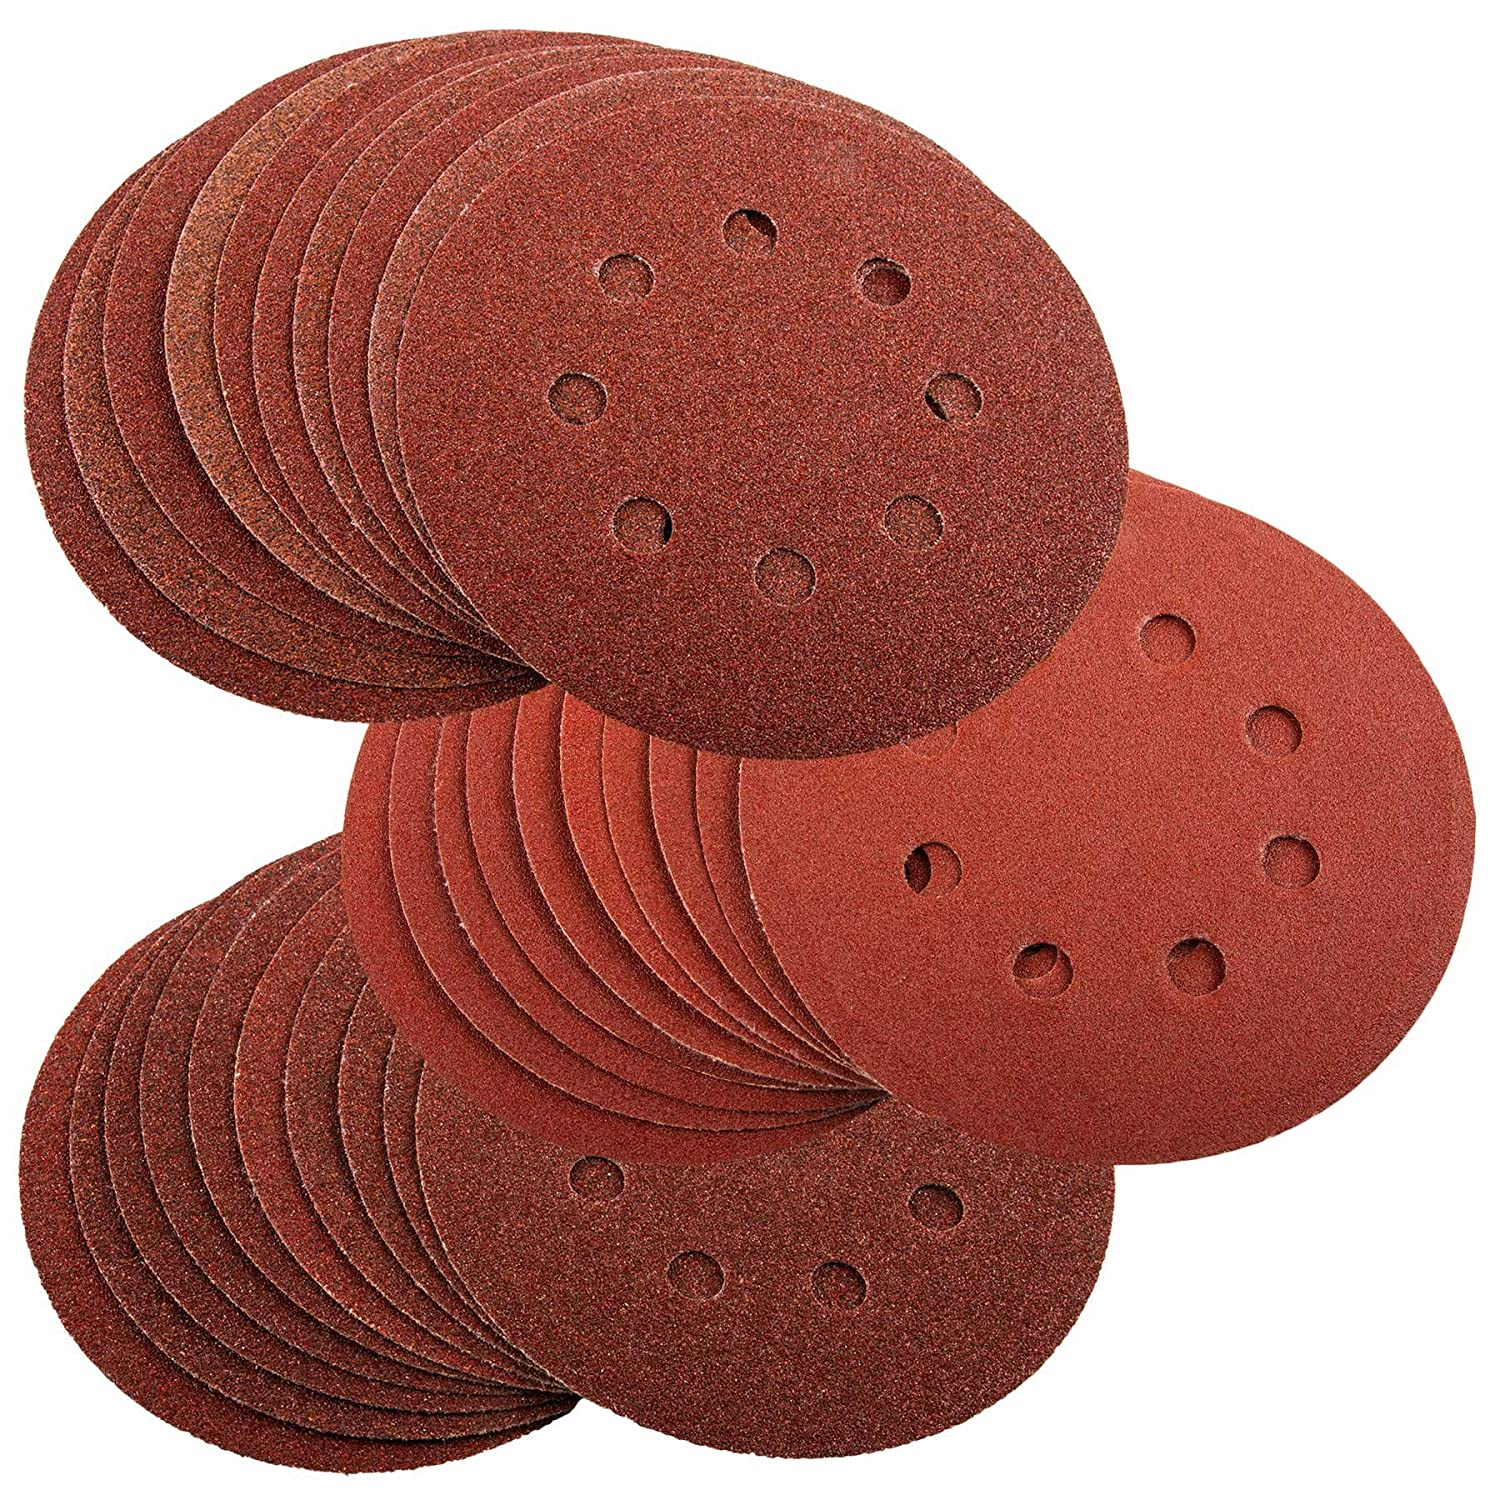 30 125mm Assorted Sanding Discs For Bosch PEX 220 300 Random Orbital Sander 60 80 120 Grit Silverline